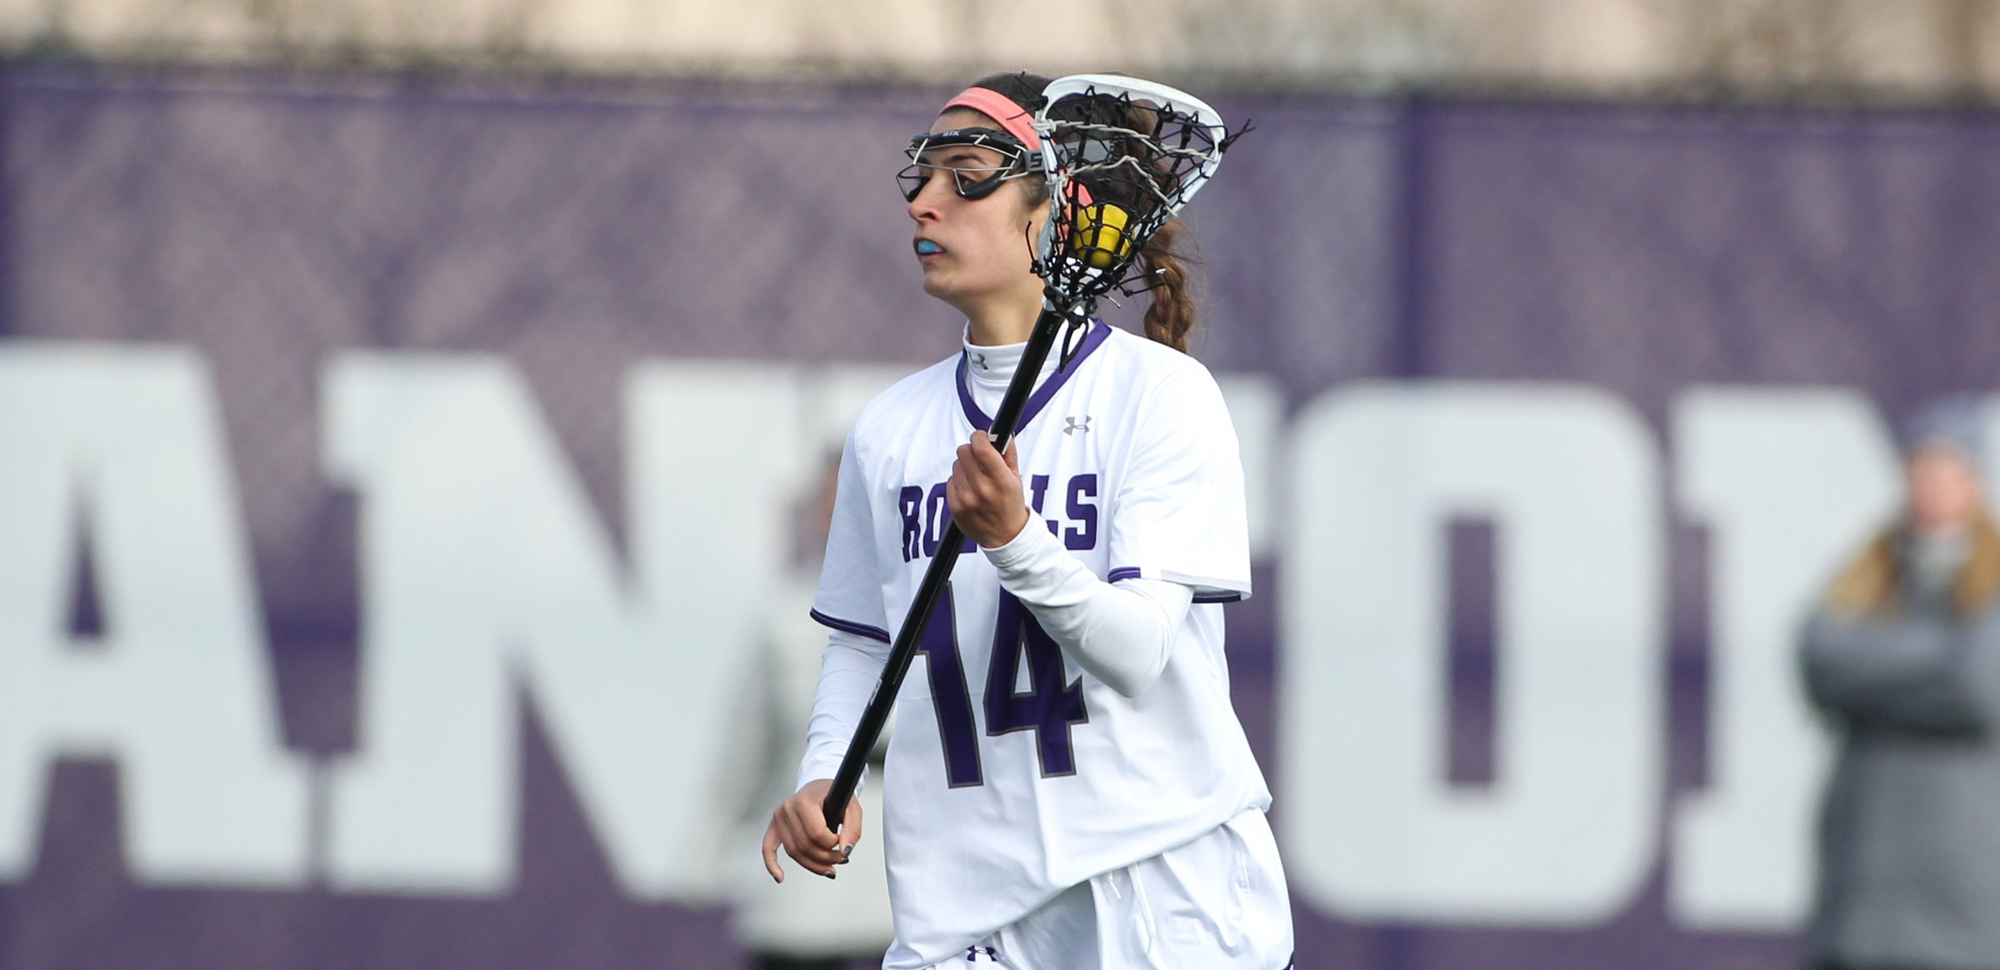 Freshman Halle Conklin scored four goals and added an assist in her first collegiate game, leading Scranton to a convincing 22-9 win over No. 16 Messiah on Saturday.